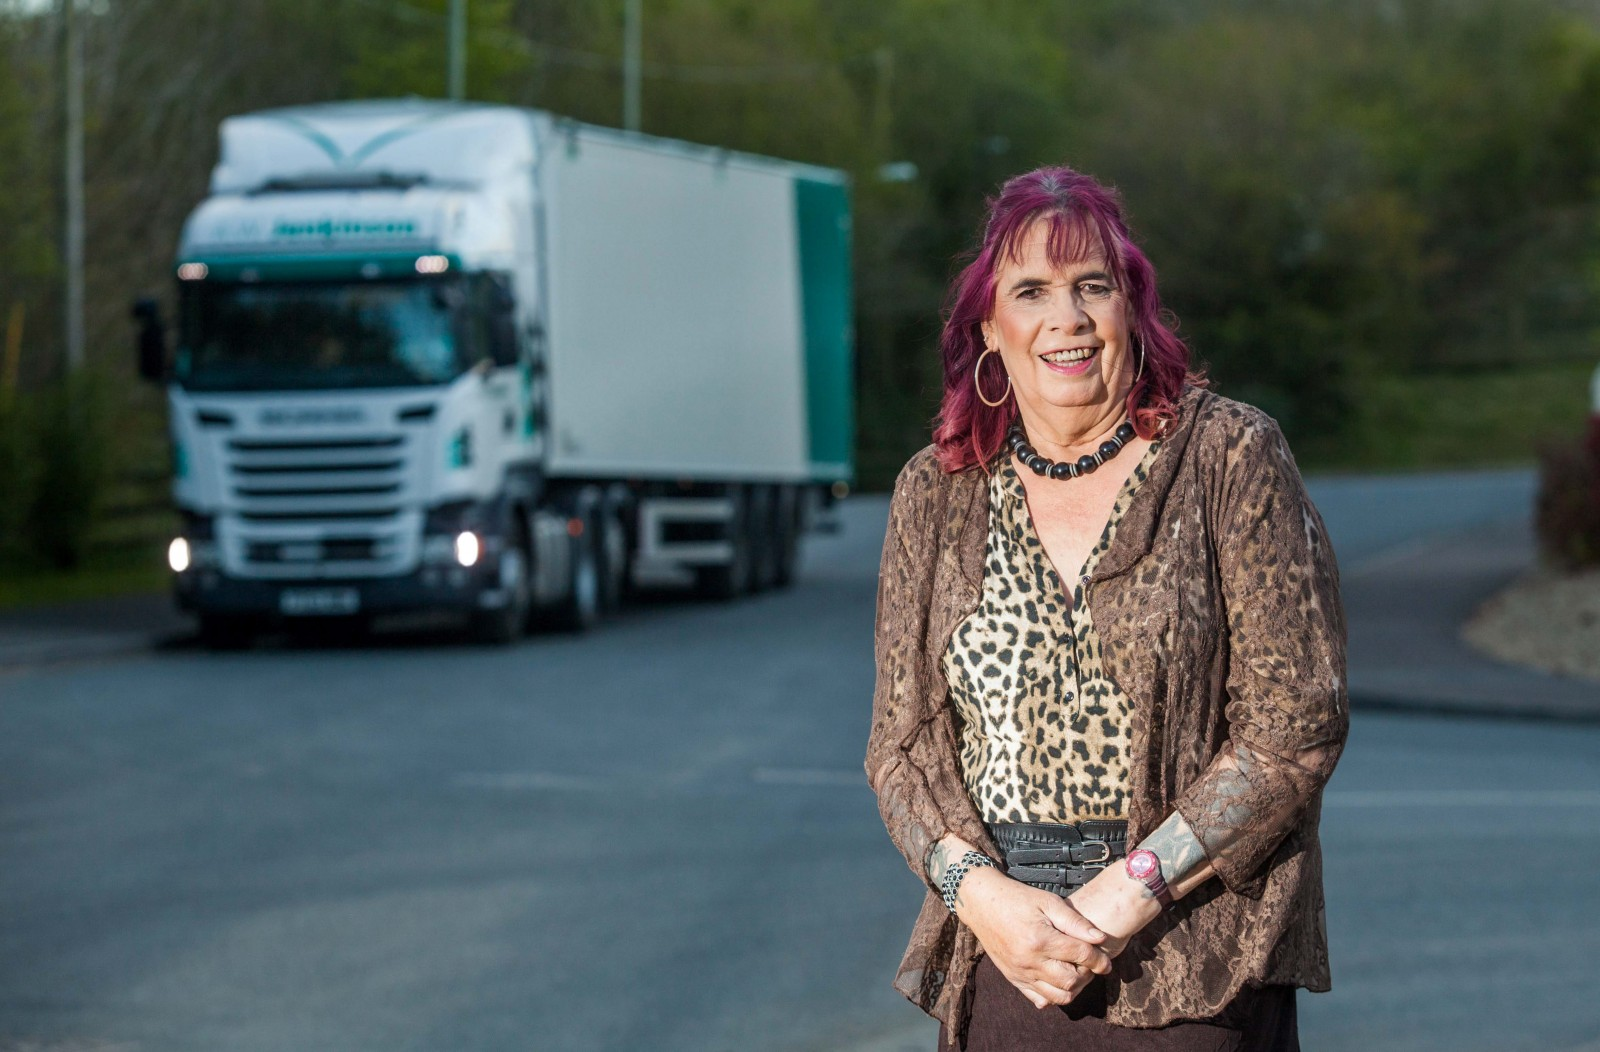 The three-times married truck driver with a 40 year secret that shocked colleagues